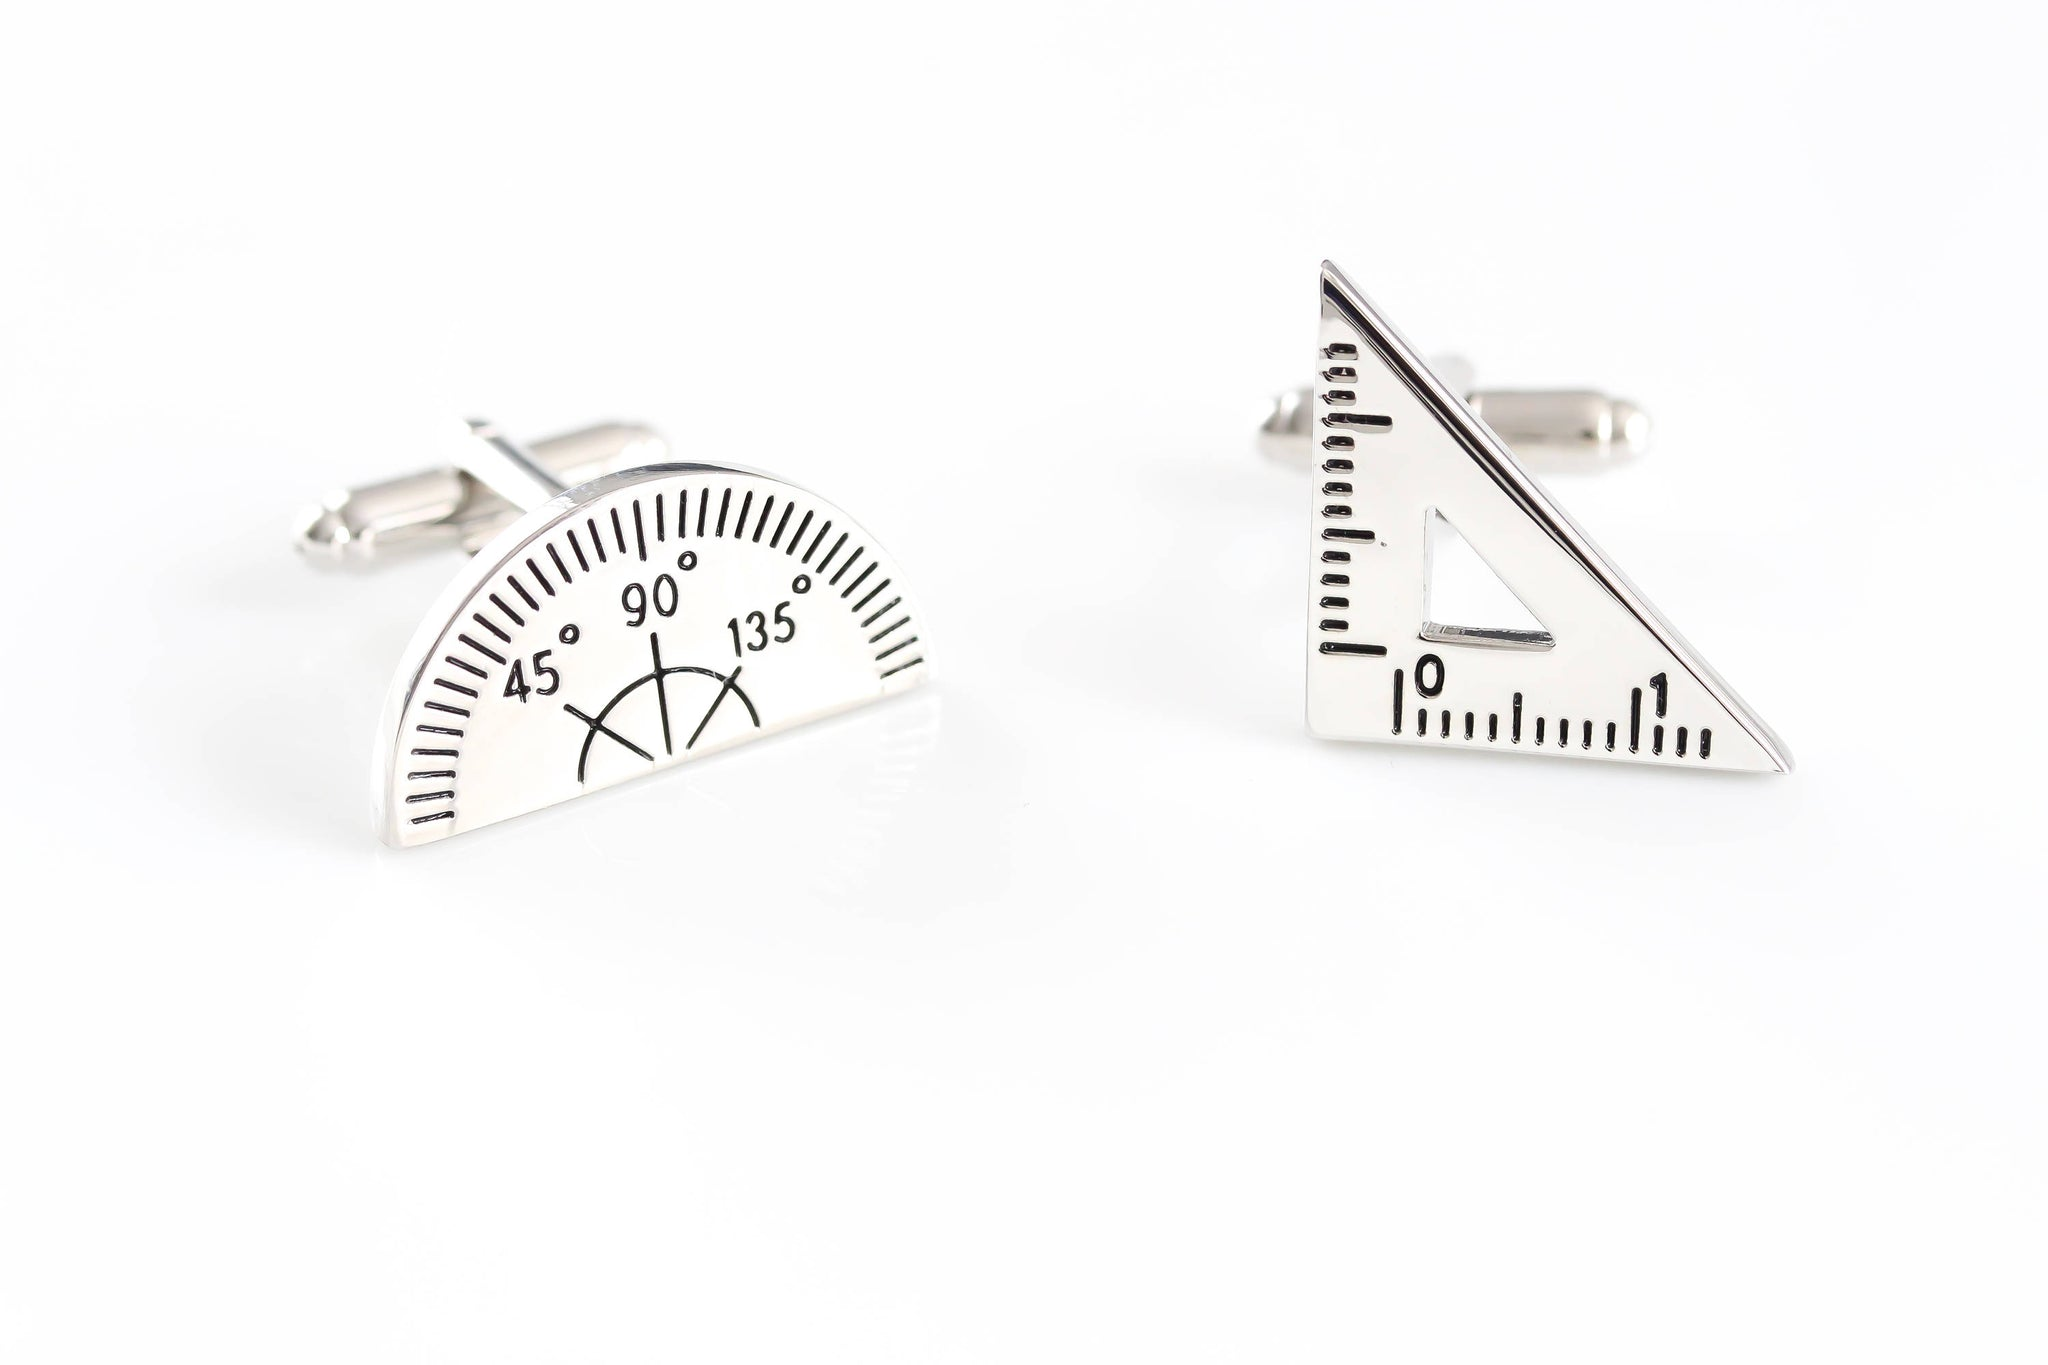 Protractor Cufflinks Math cufflinks Silver Cufflinks Novelty Cufflinks Wedding Cufflinks Groomsmen Science Cool Cufflinks Mens gift - product_type] - Beautiz